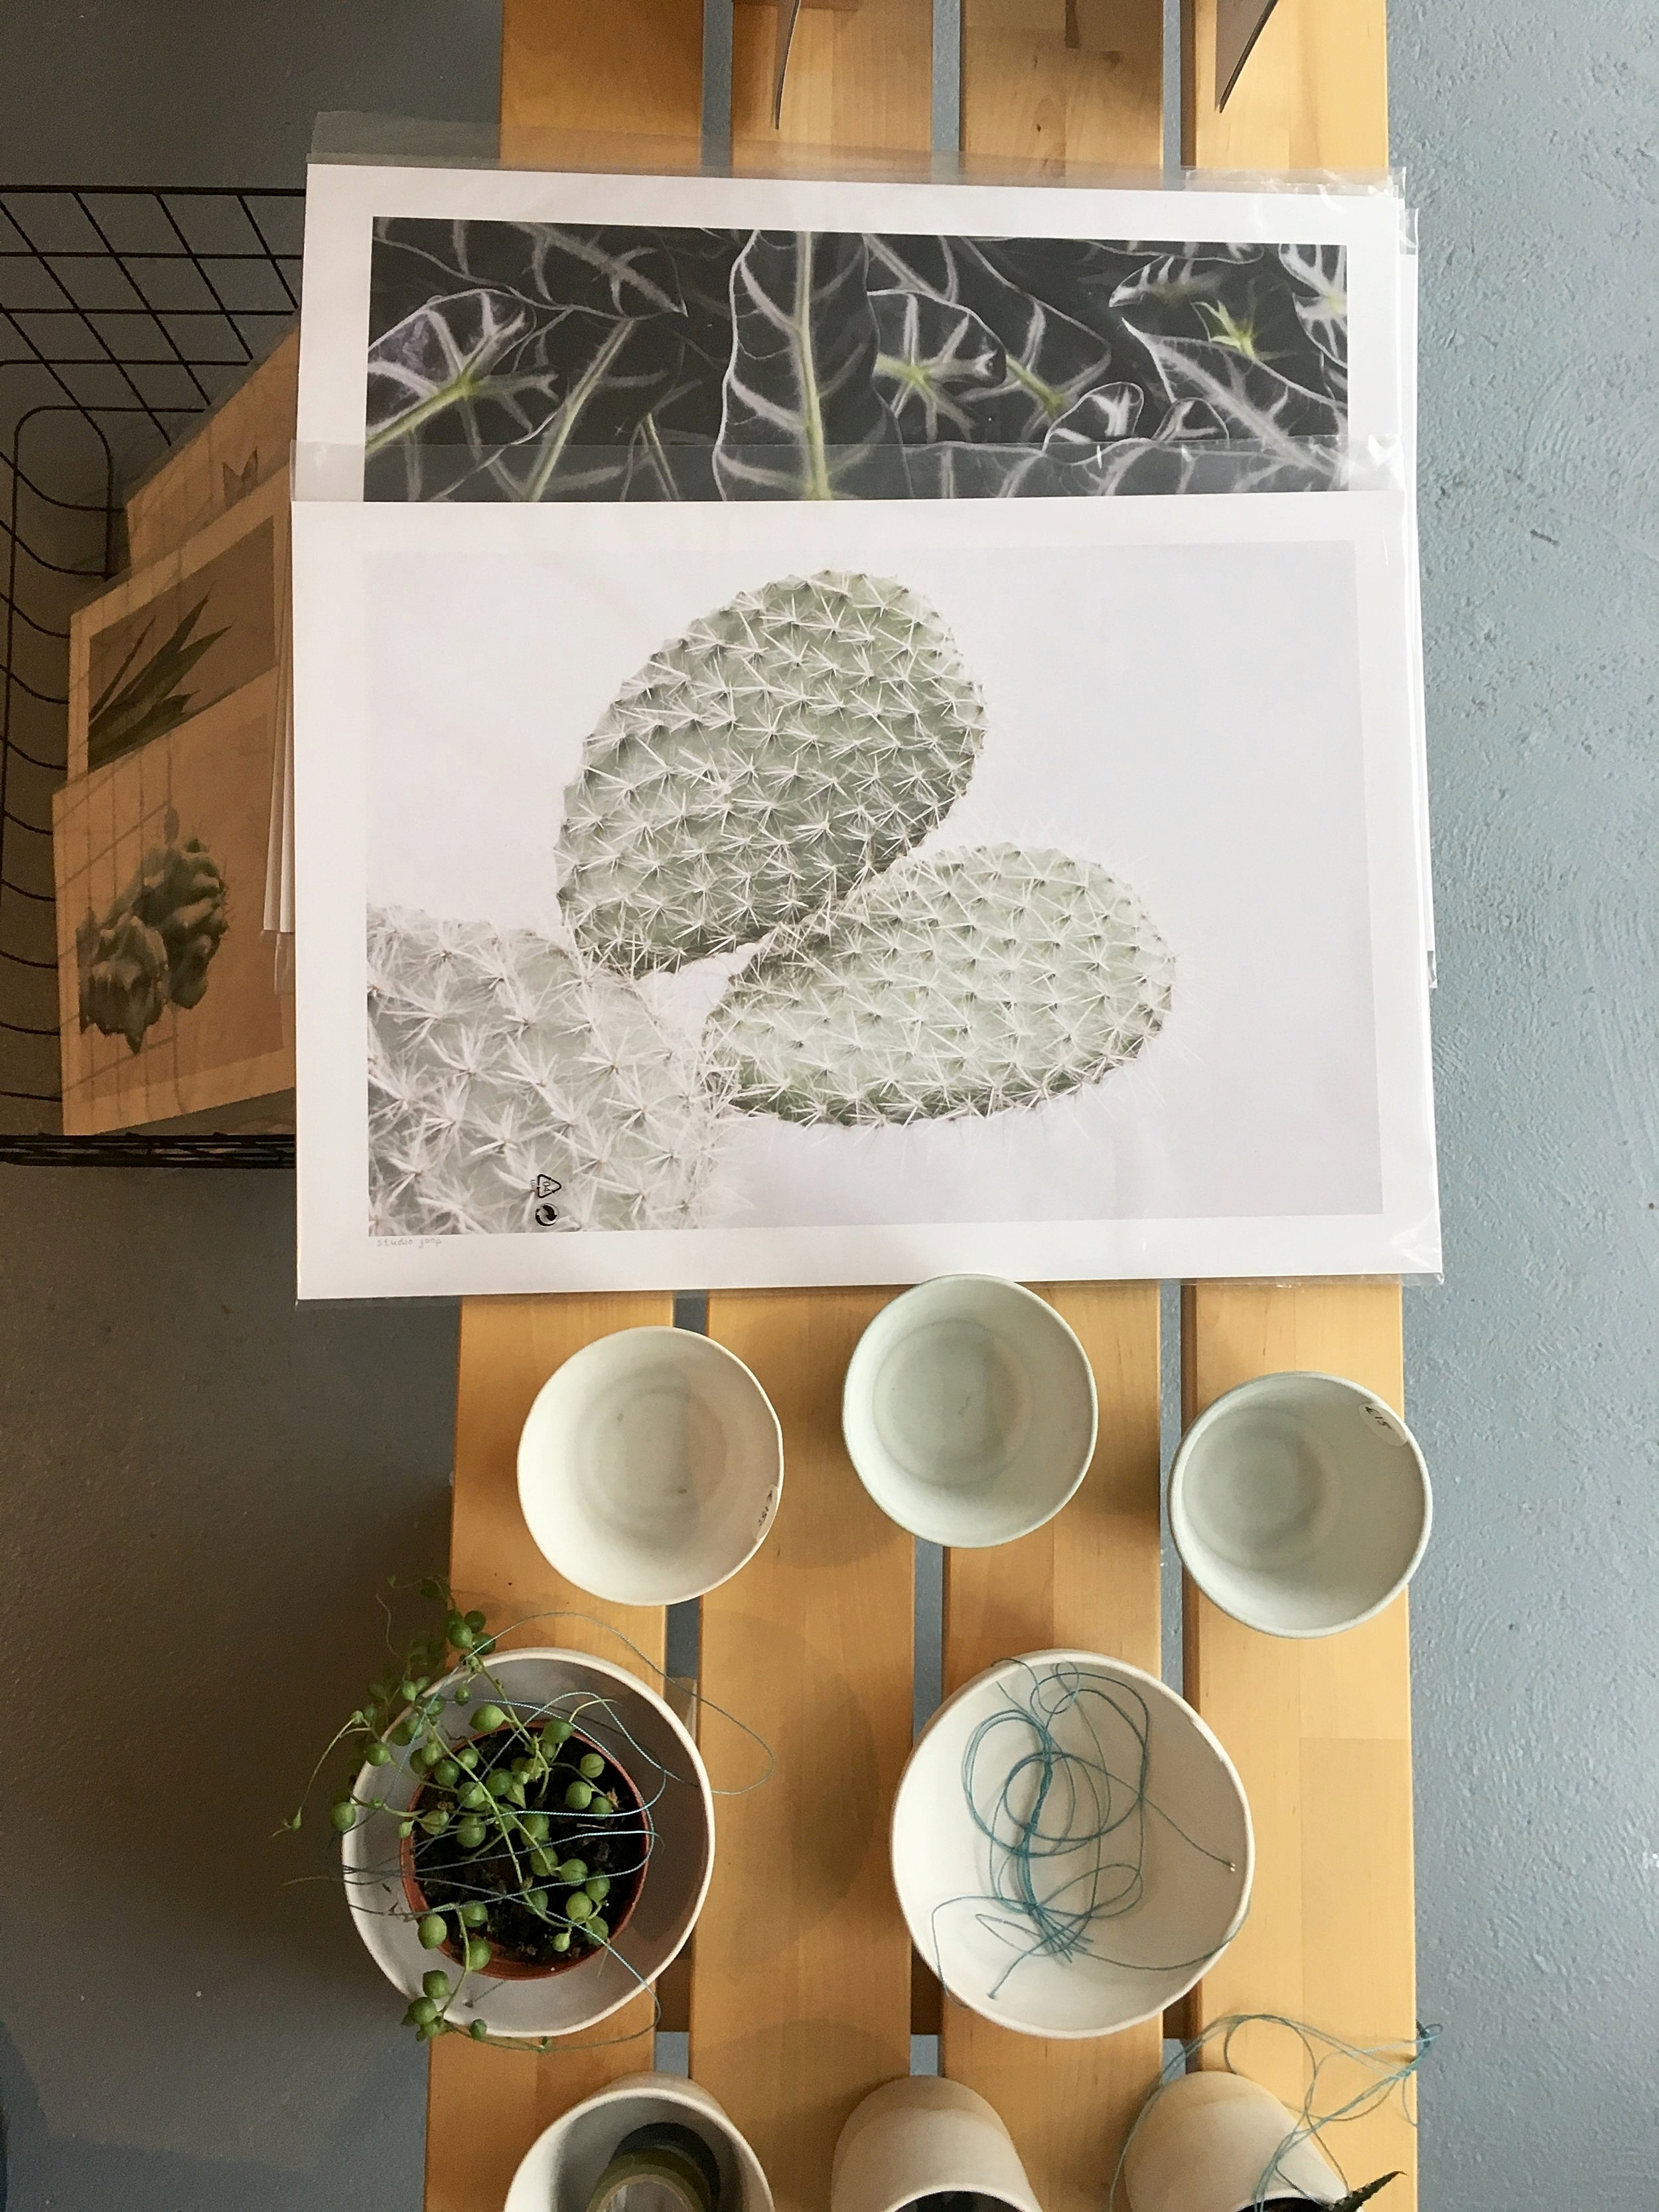 ~great ceramics and posters made by    Annemieke Boots Ceramics.